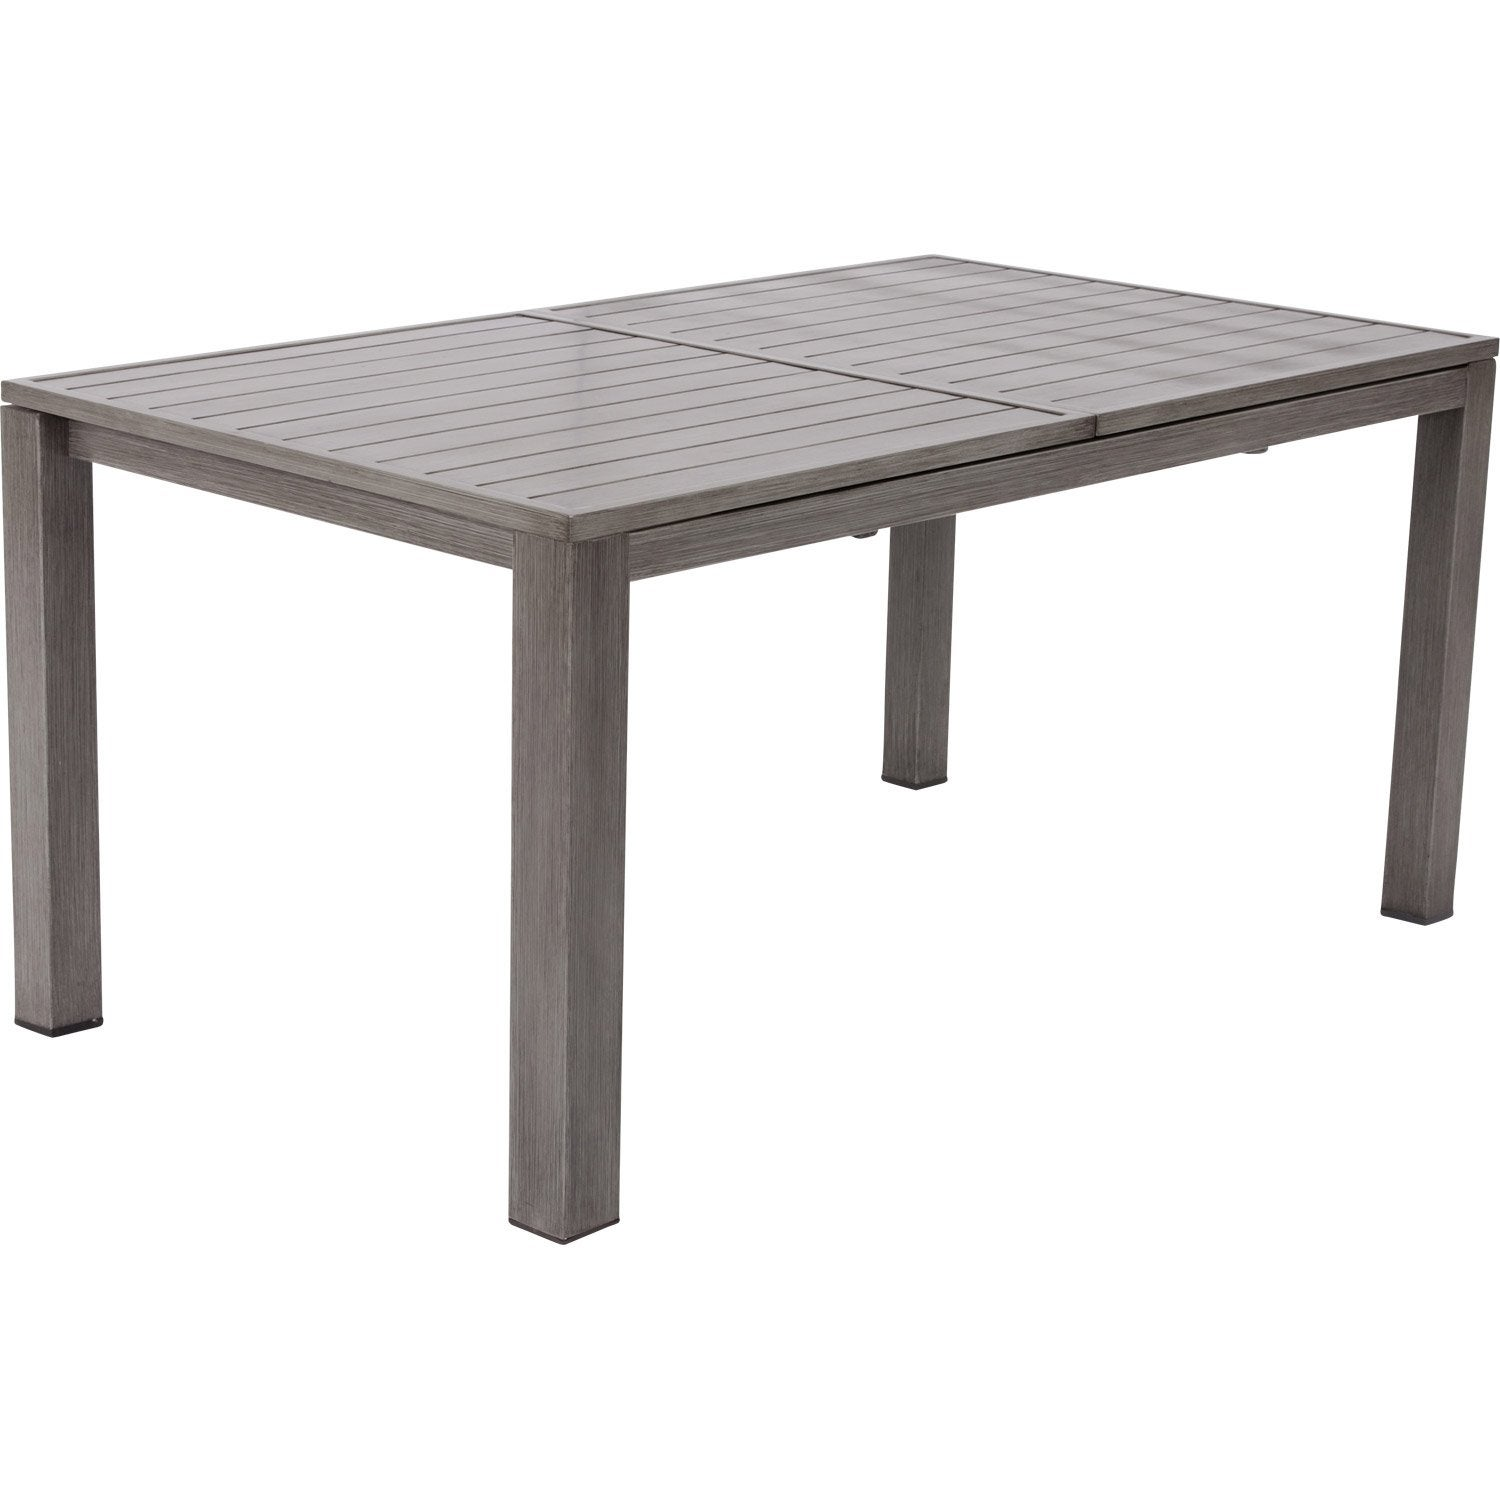 Table de jardin naterial antibes rectangulaire gris look - Table rectangulaire en bois ...